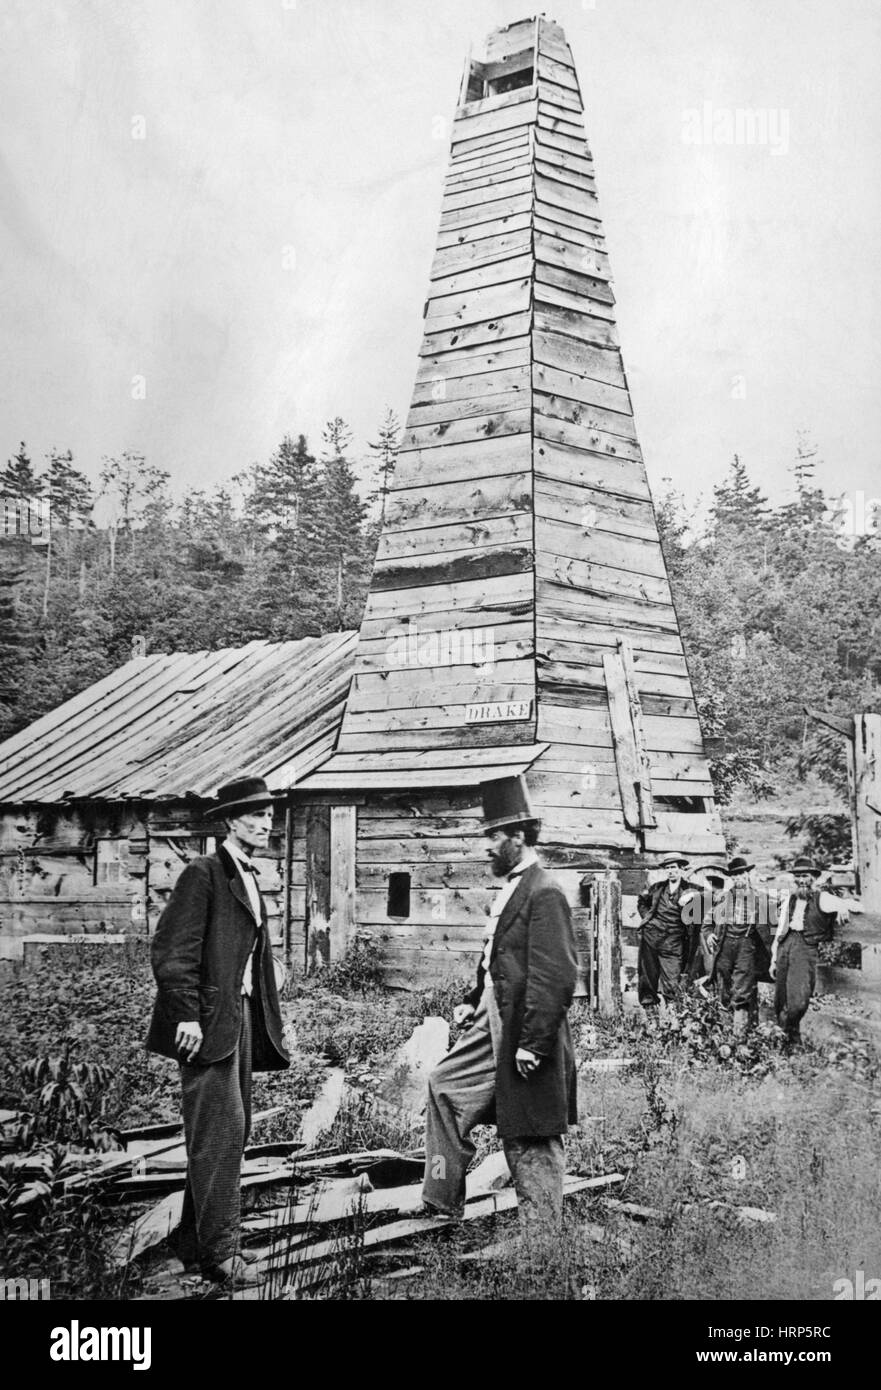 First Commercial U.S. Oil Well, 1859 - Stock Image